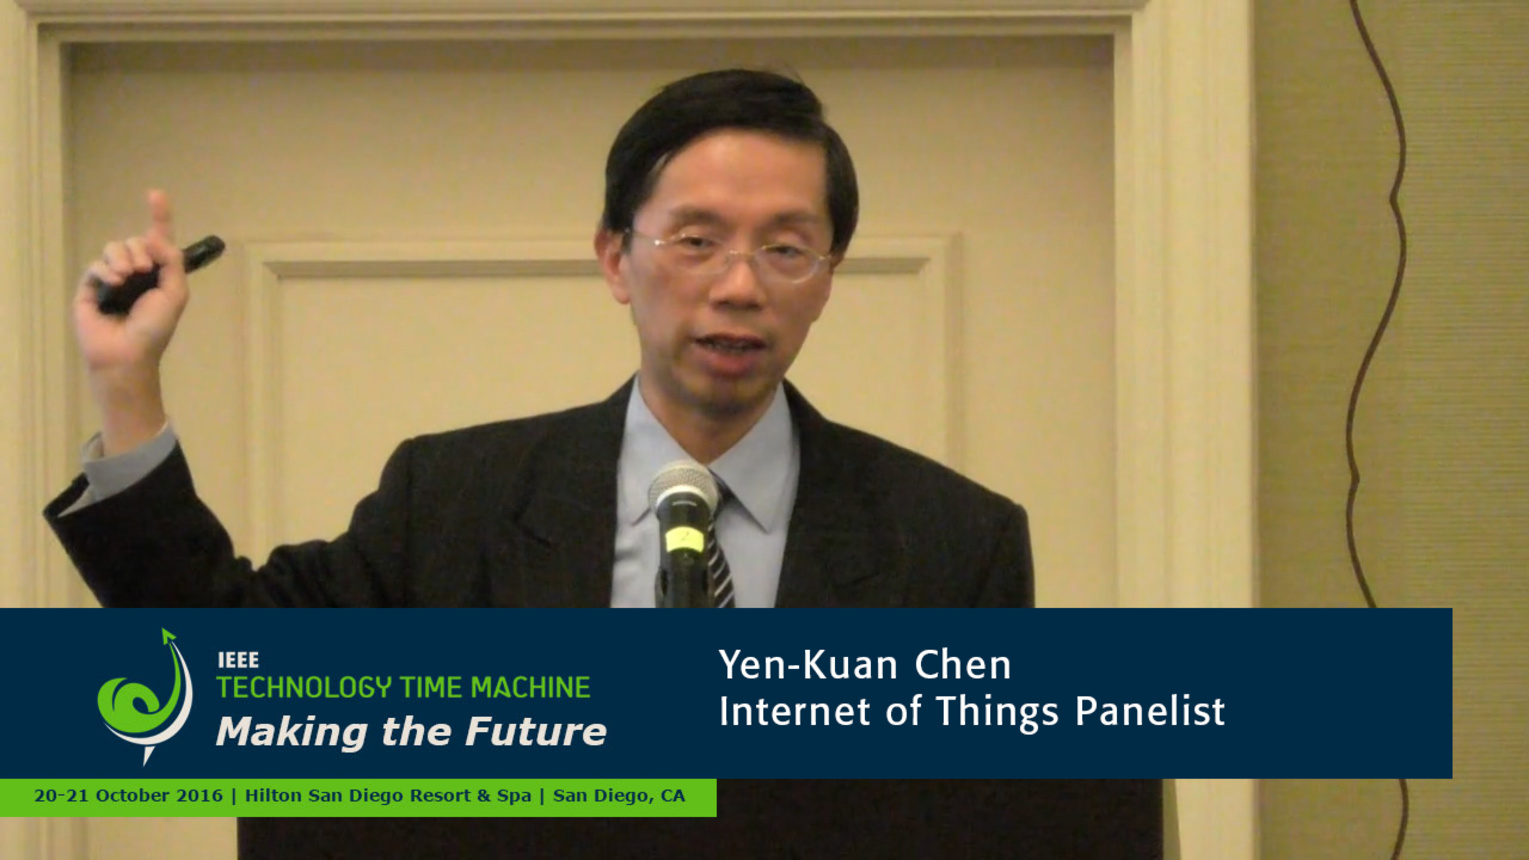 Internet of Things Panelist - Yen-Kuang Chen: 2016 Technology Time Machine